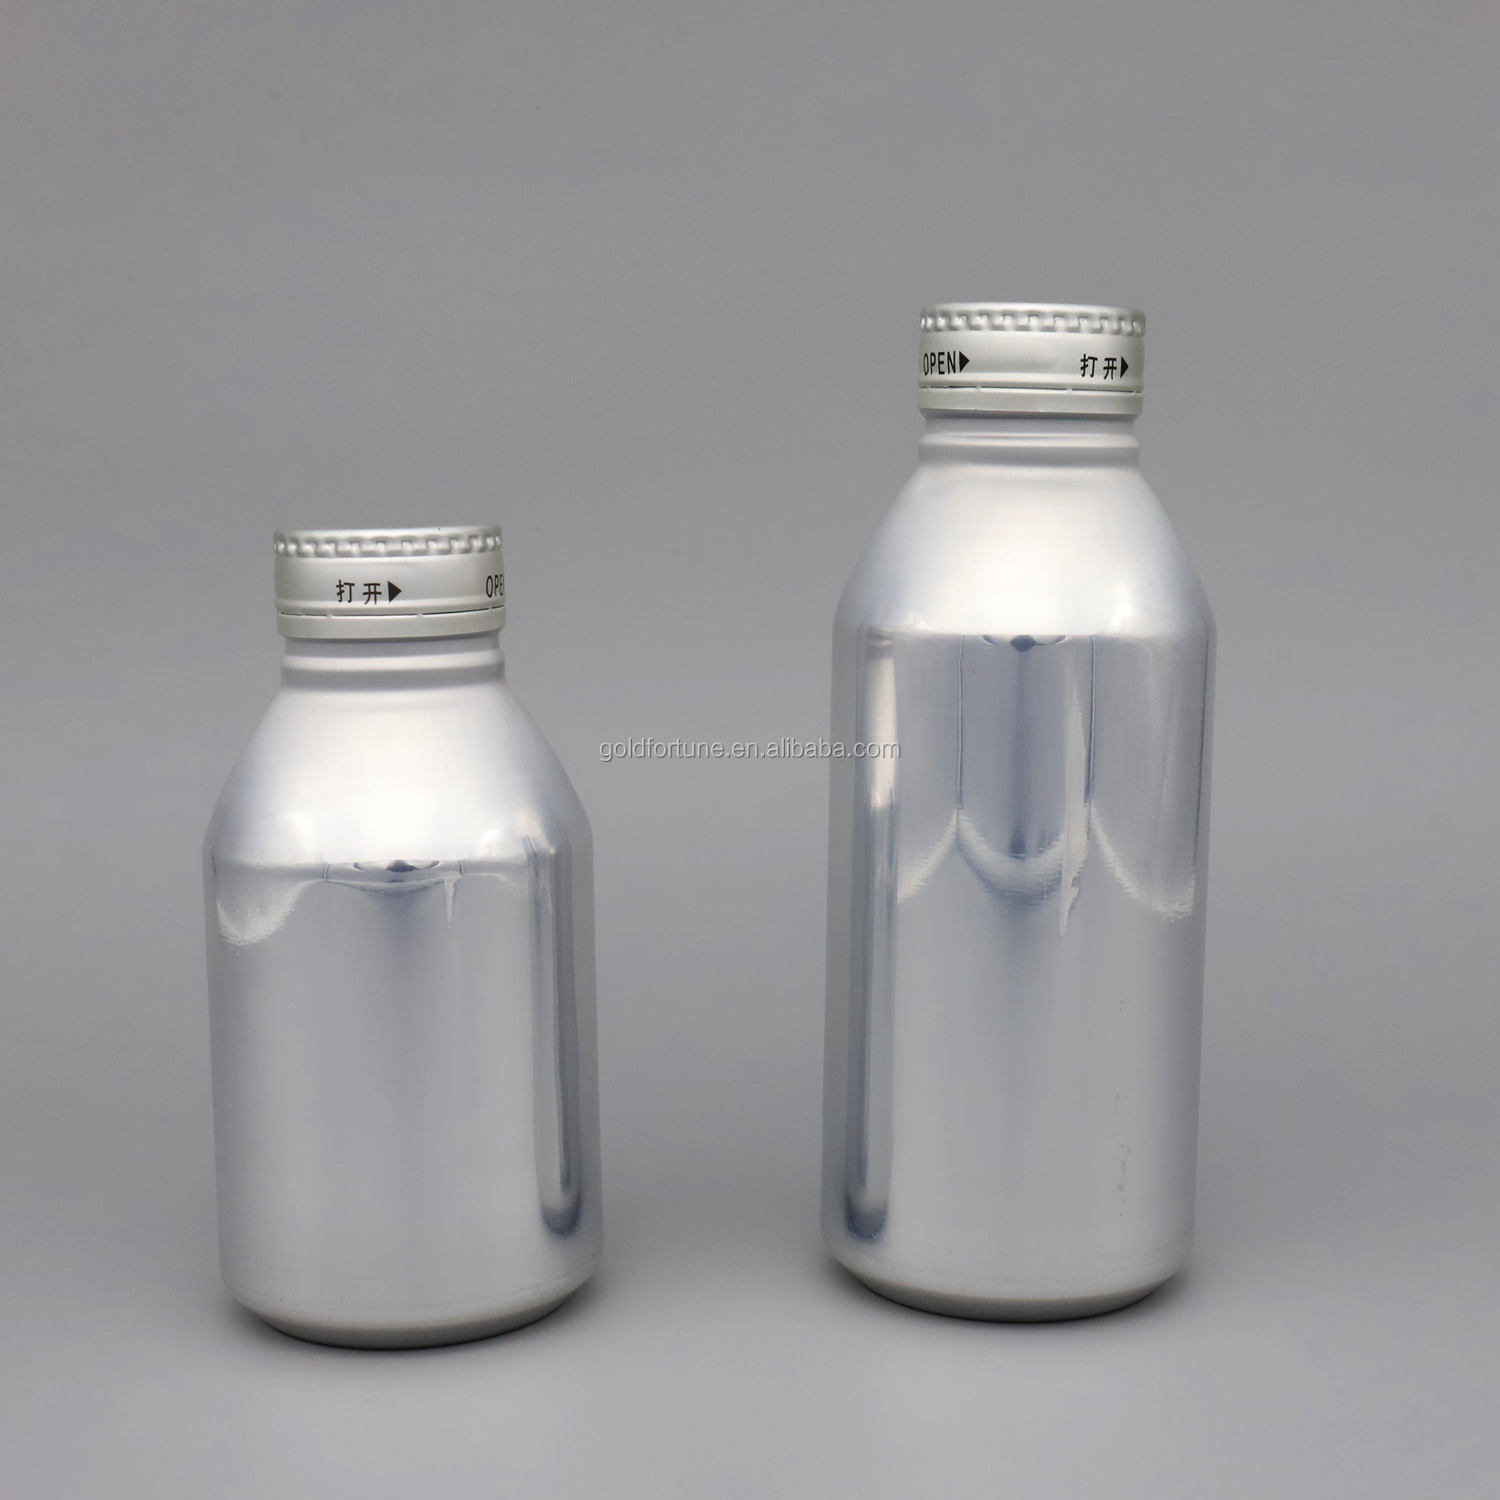 250ml 330ml custom soda soft drink beer milk aluminum bottle cans with lids